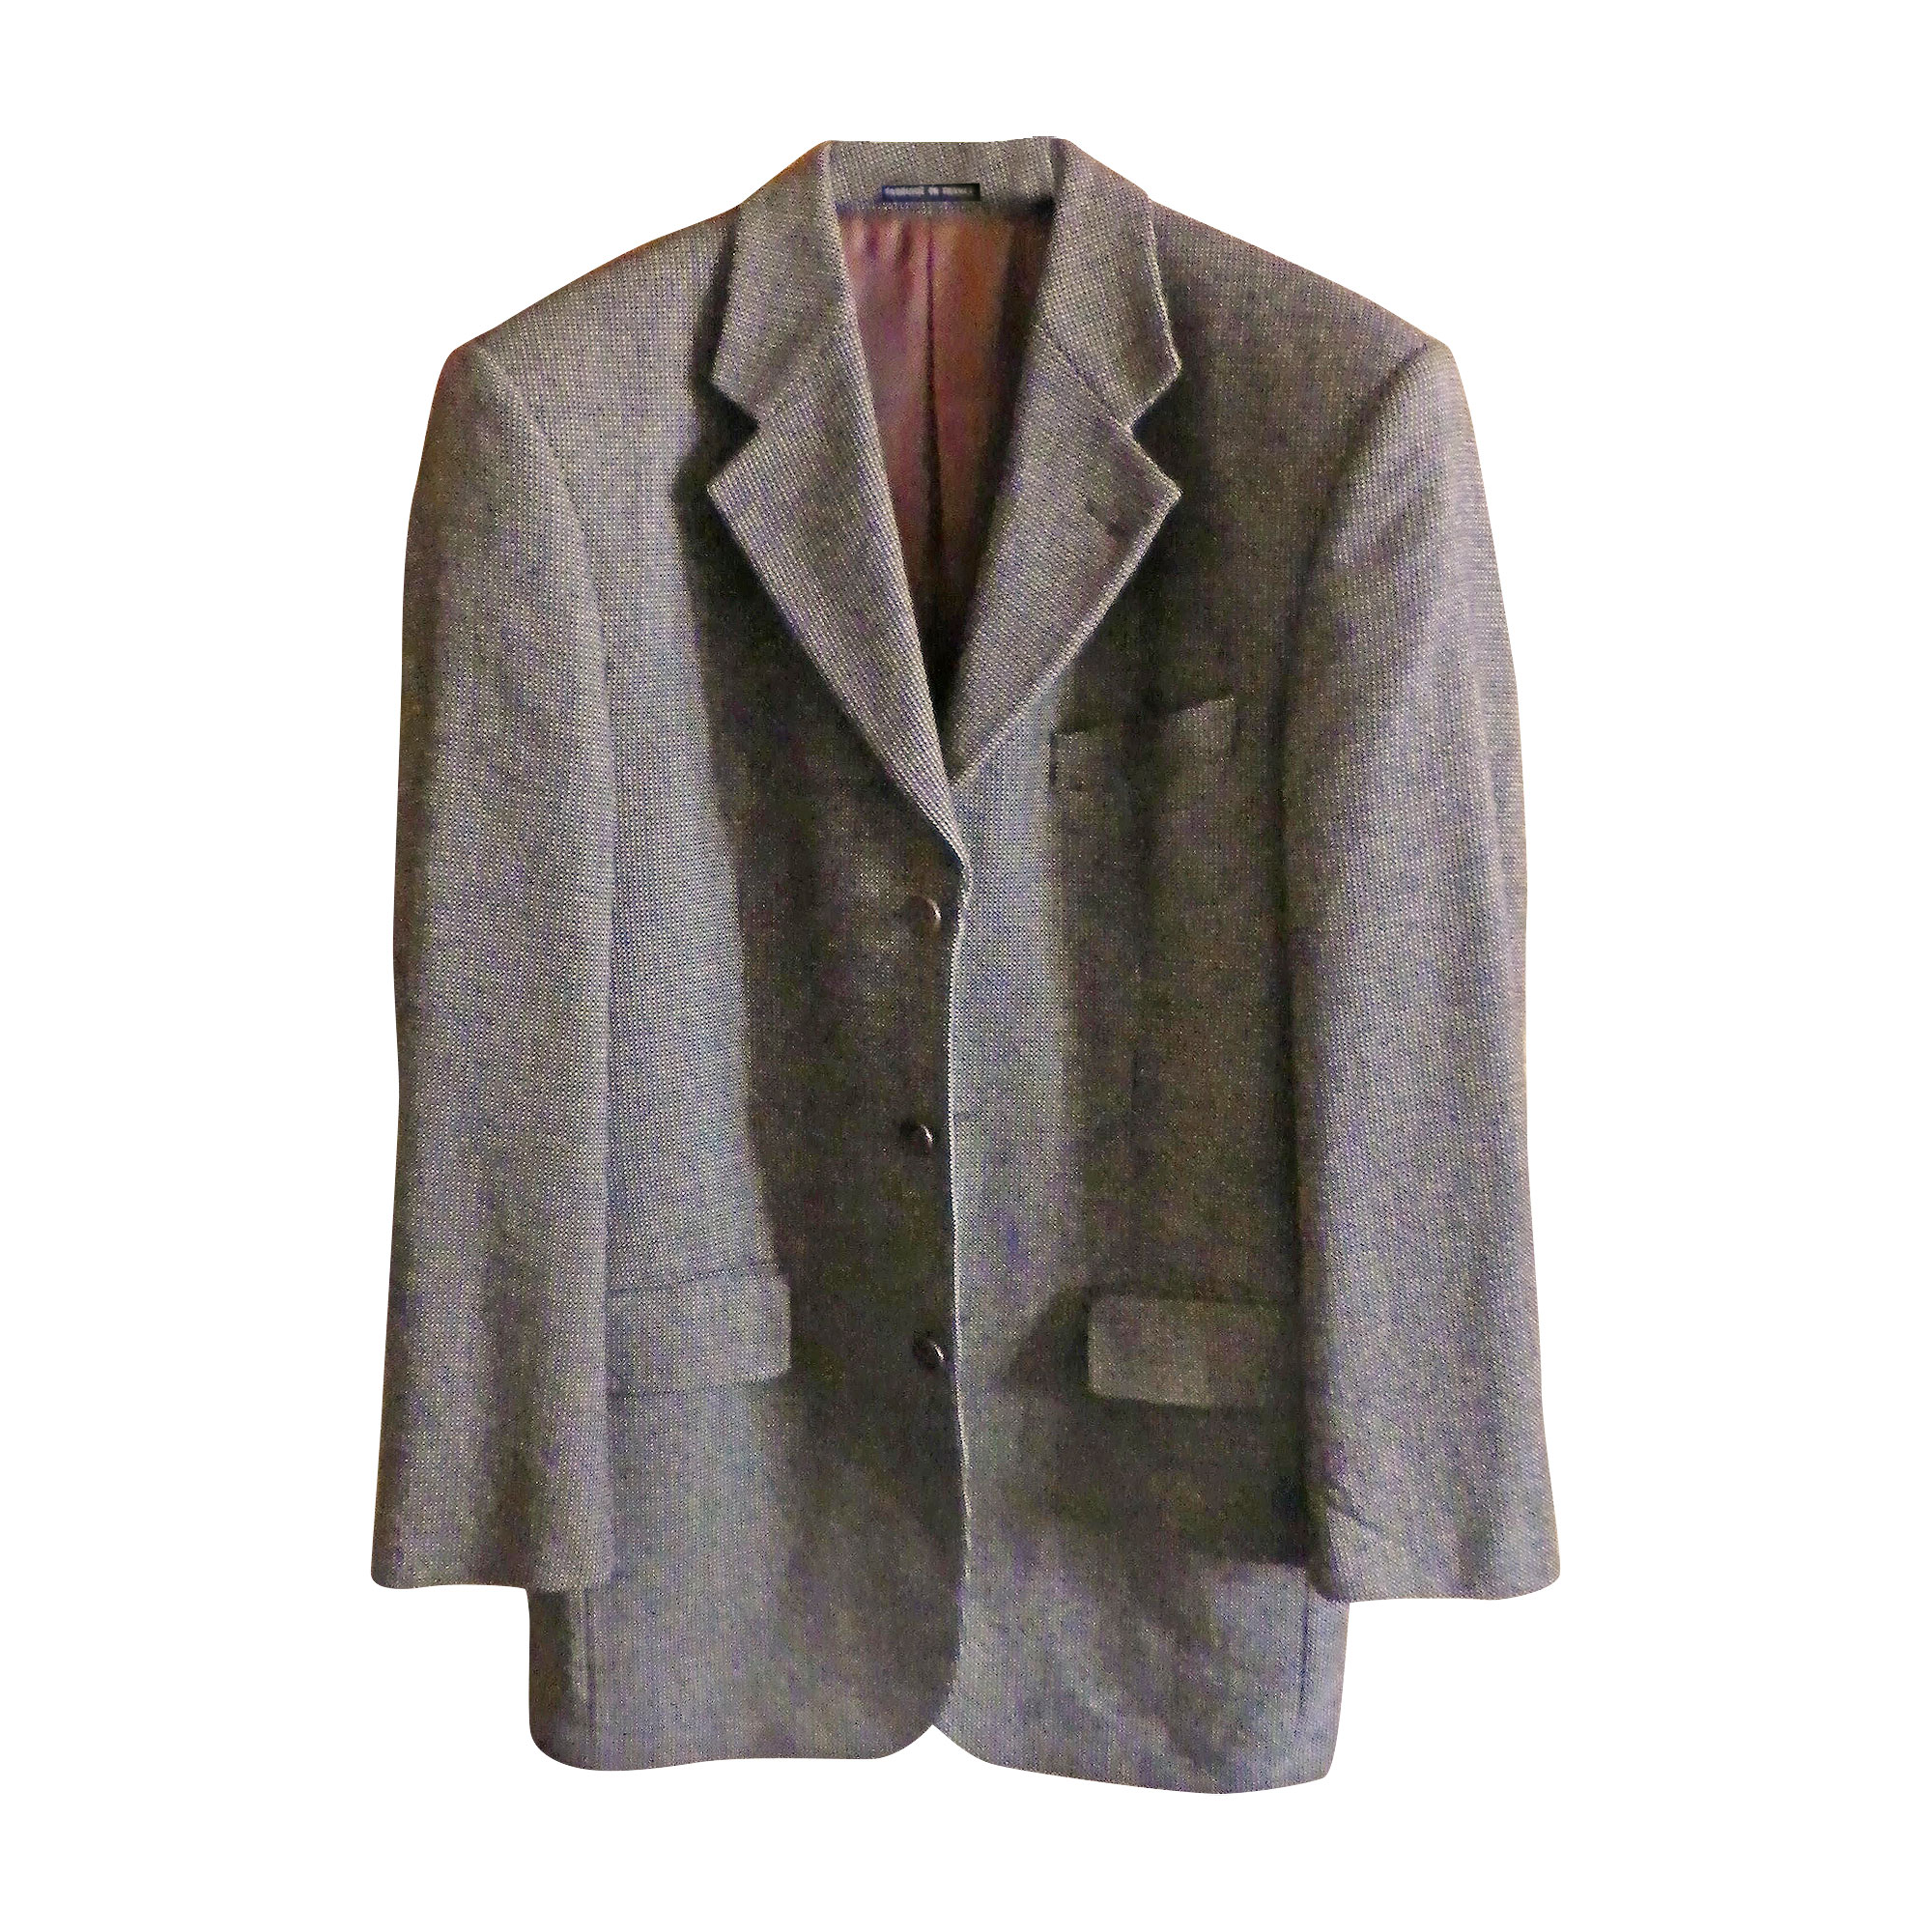 Veste YVES SAINT LAURENT Gris, anthracite